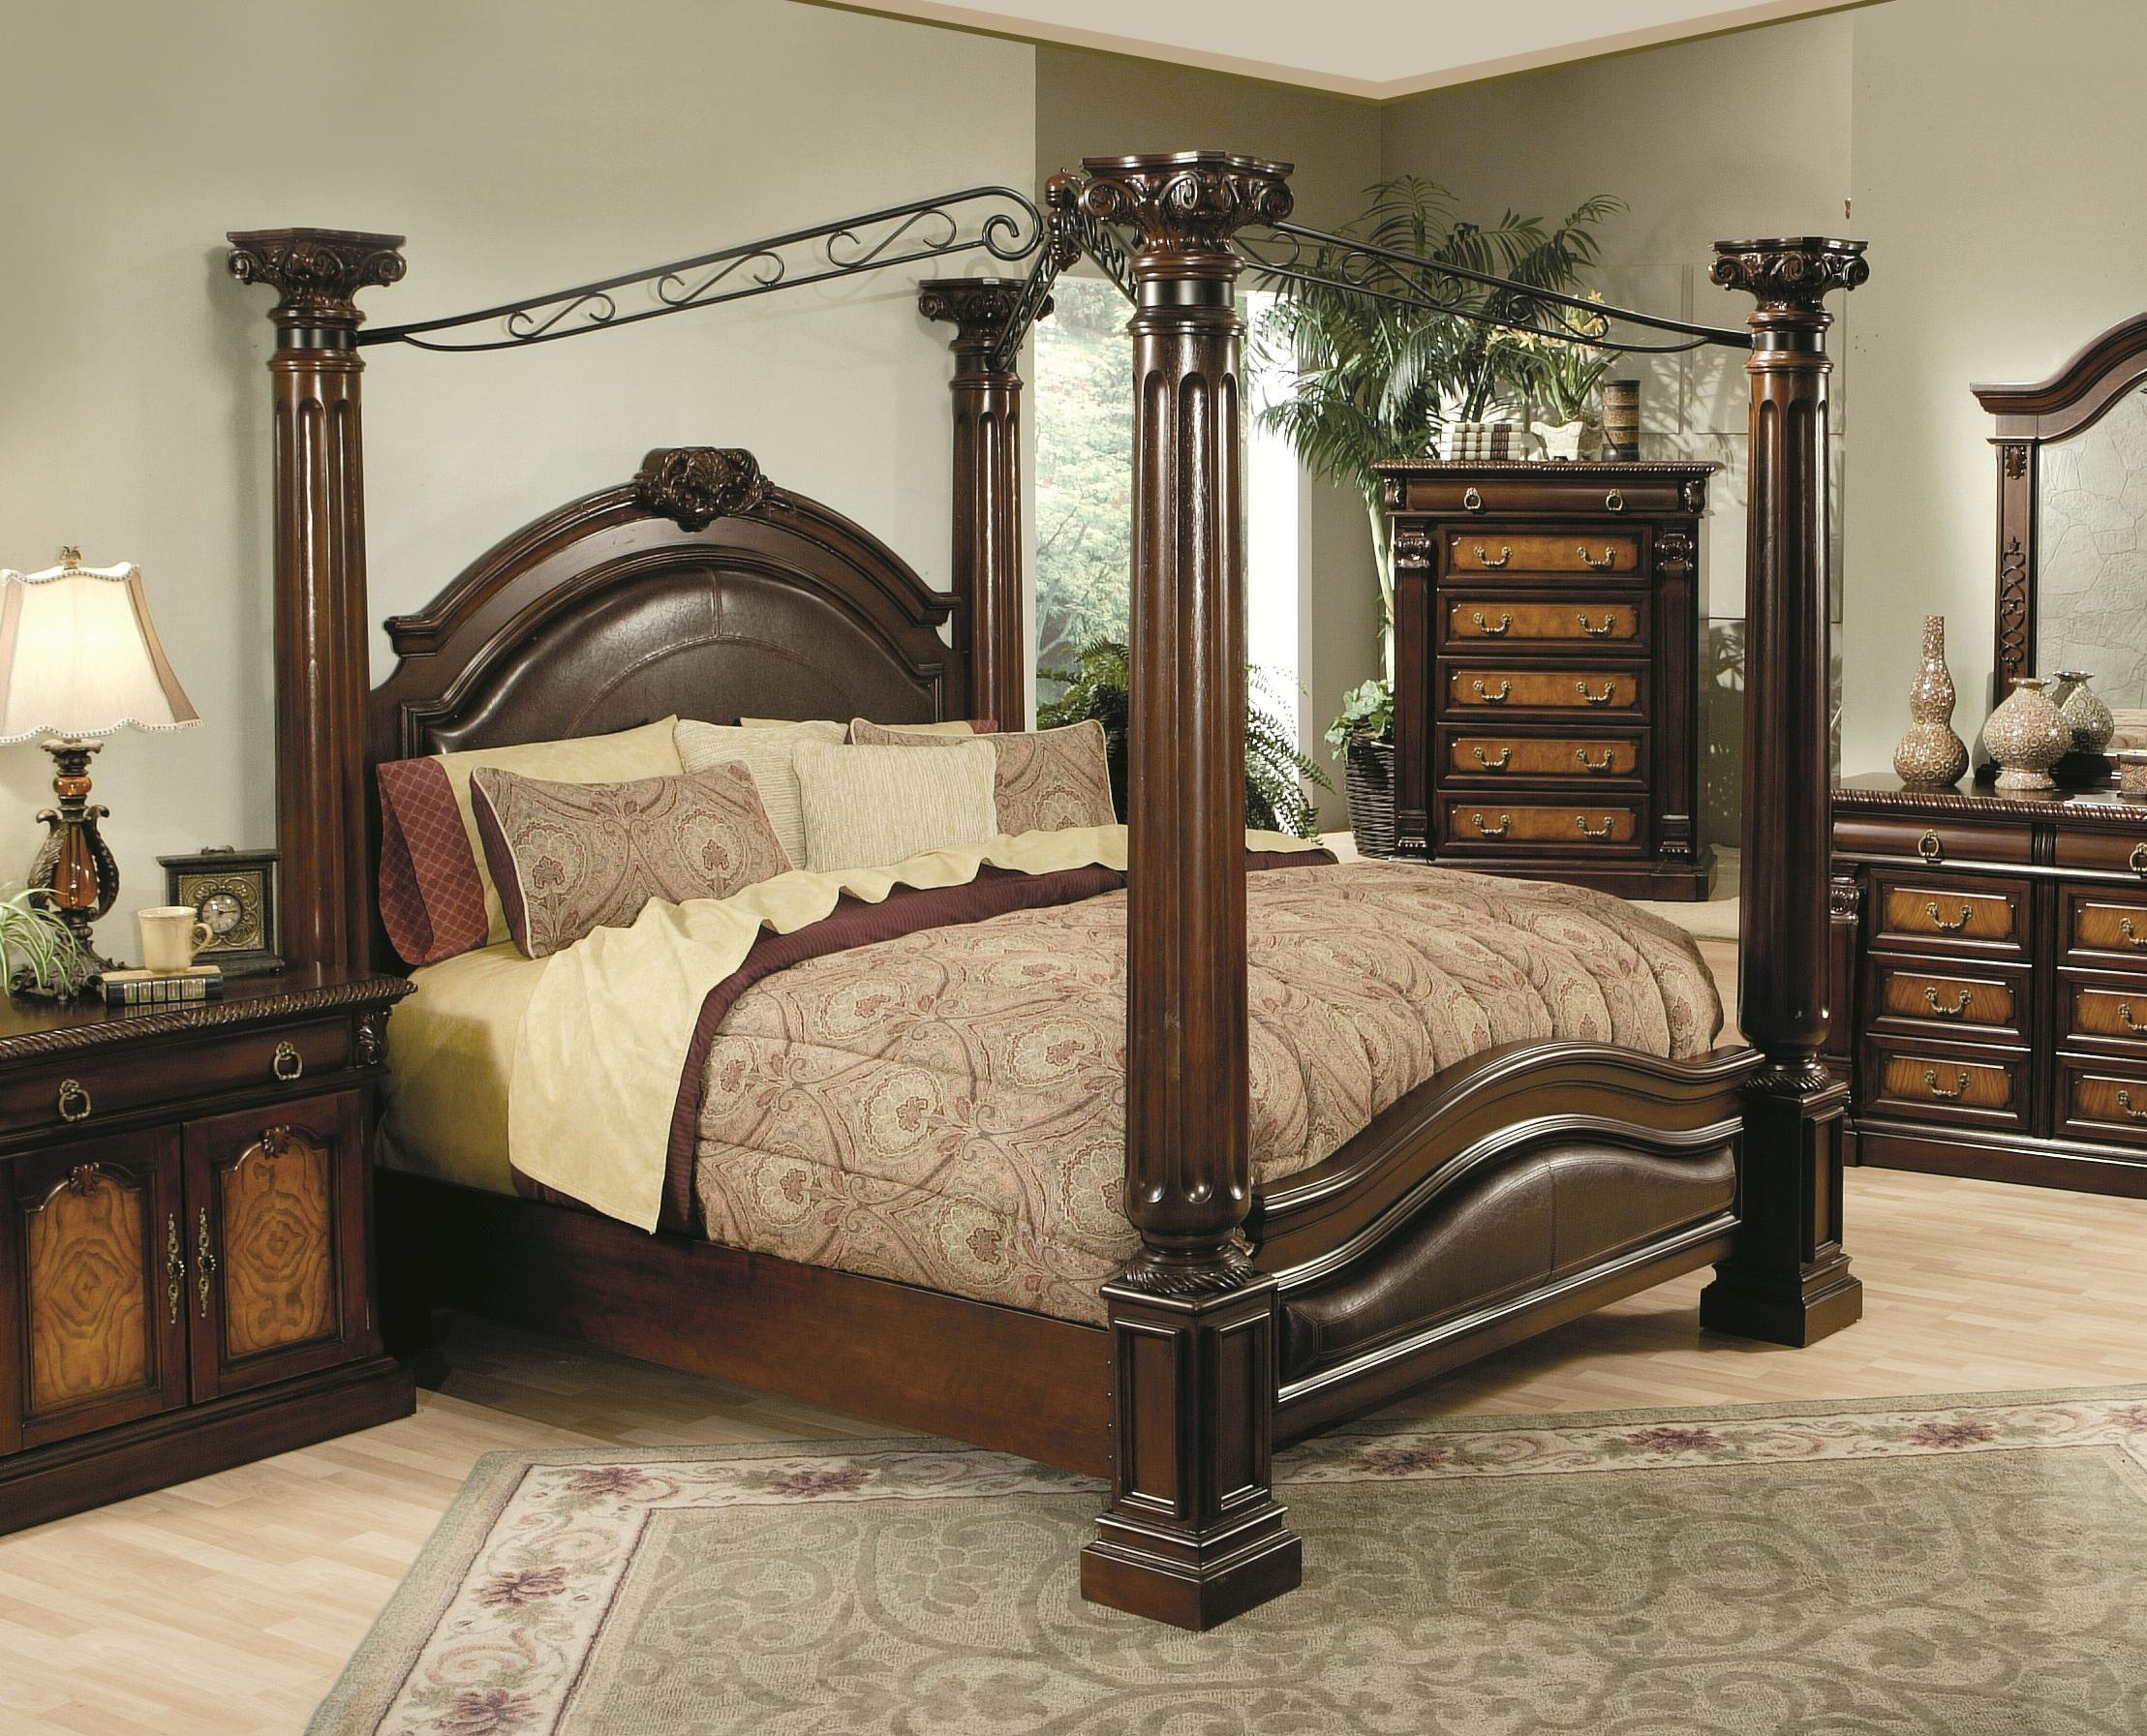 Fantastic king canopy bed for classic bedroom ideas with king size canopy bed & Bedroom Design: Cute King Canopy Bed For Classic Bedroom Ideas ...